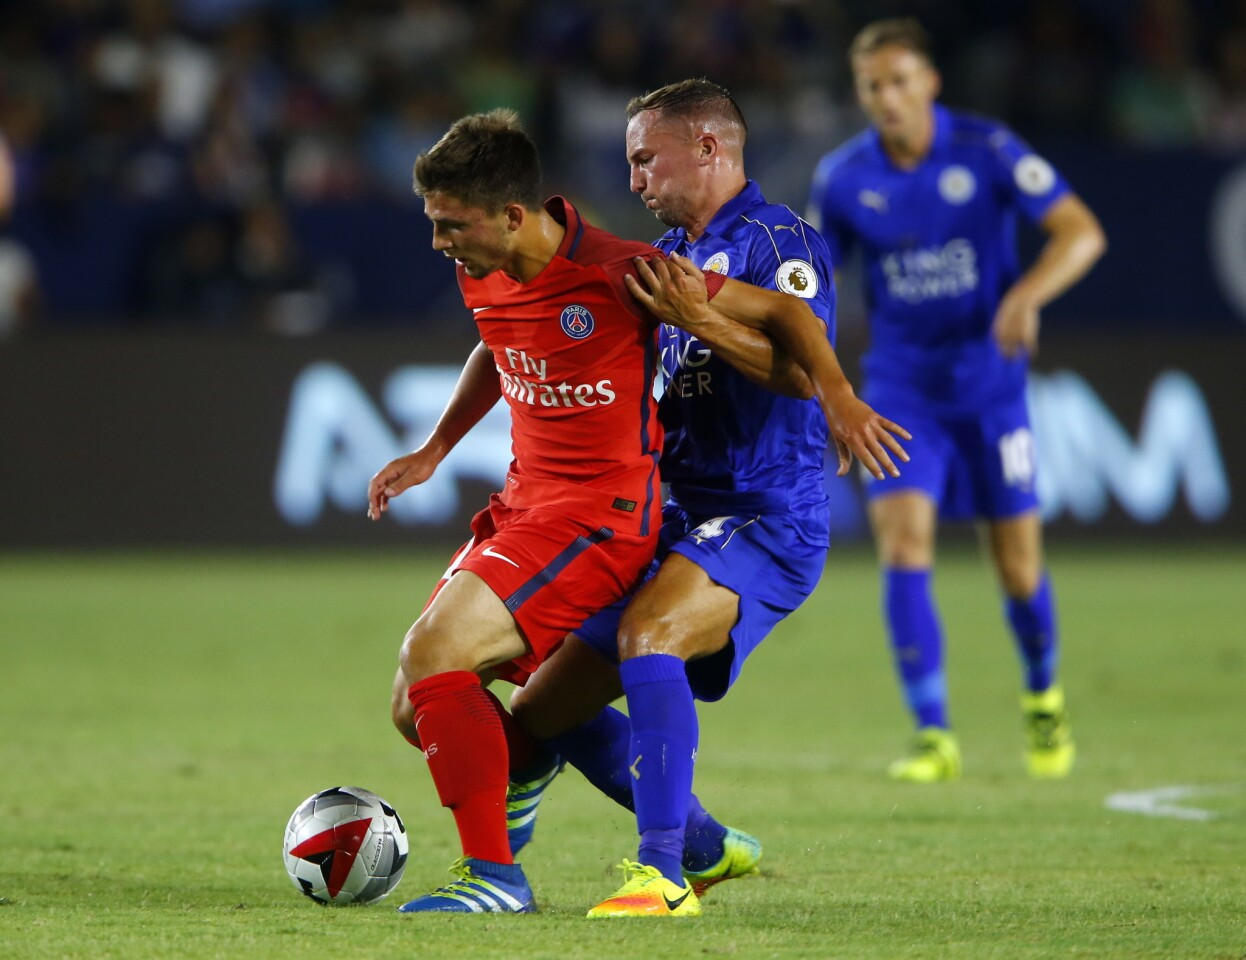 Paris St Germain v Leicester City - International Champions Cup